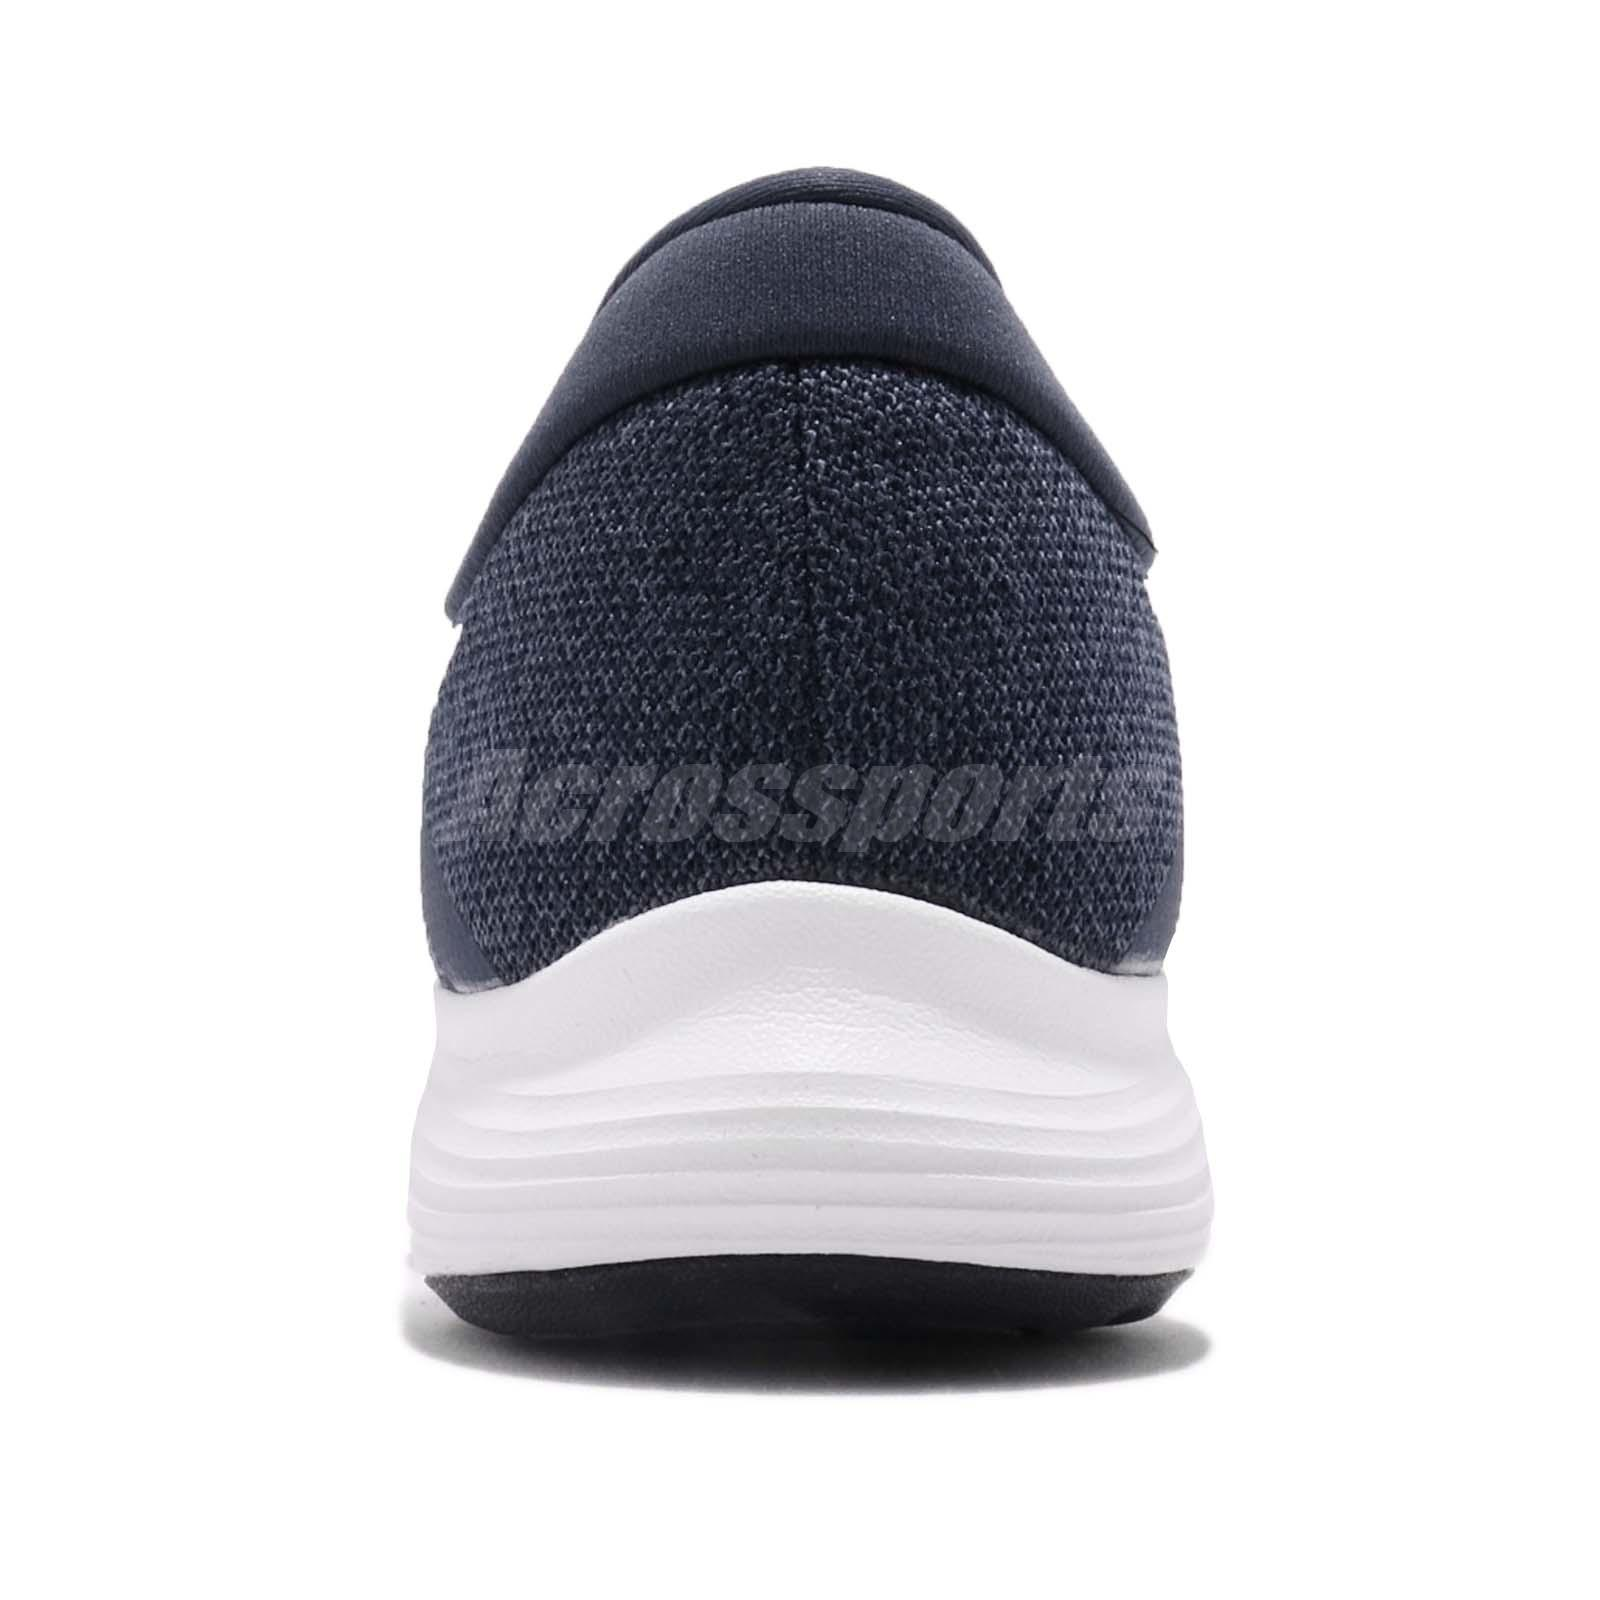 a8b5f0ae47aee Nike Revolution 4 IV Thunder Blue White Men Running Shoes Sneakers ...